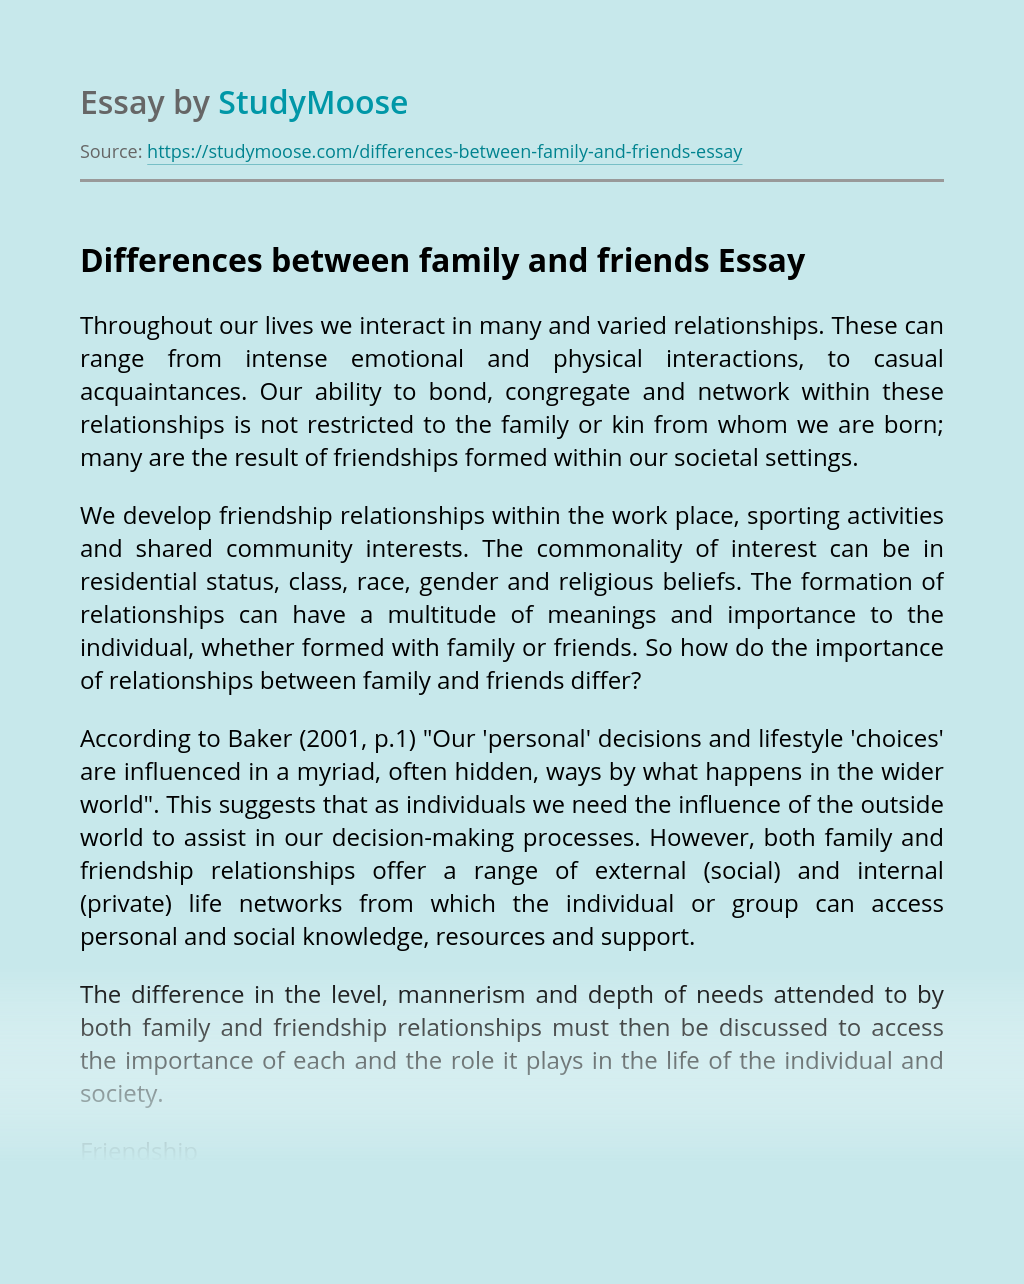 Differences between family and friends